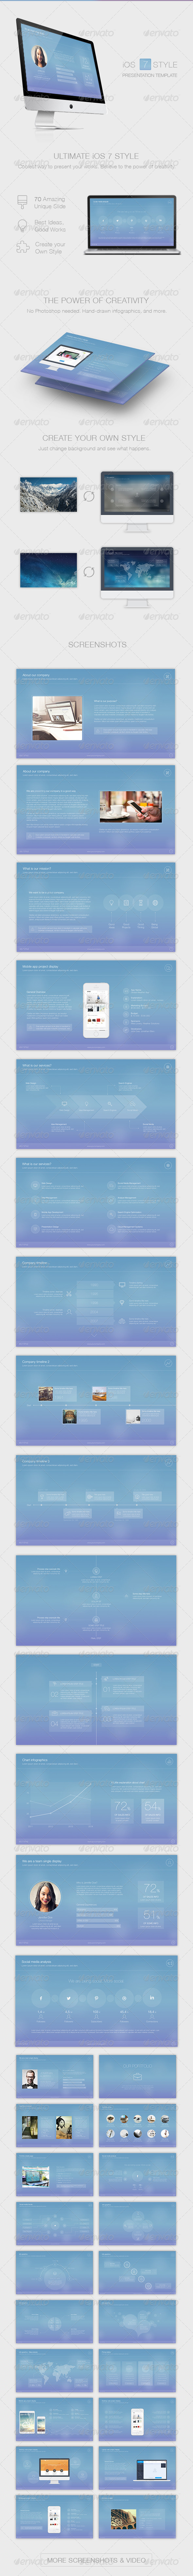 GraphicRiver 7 Style Powerpoint Template 8597863